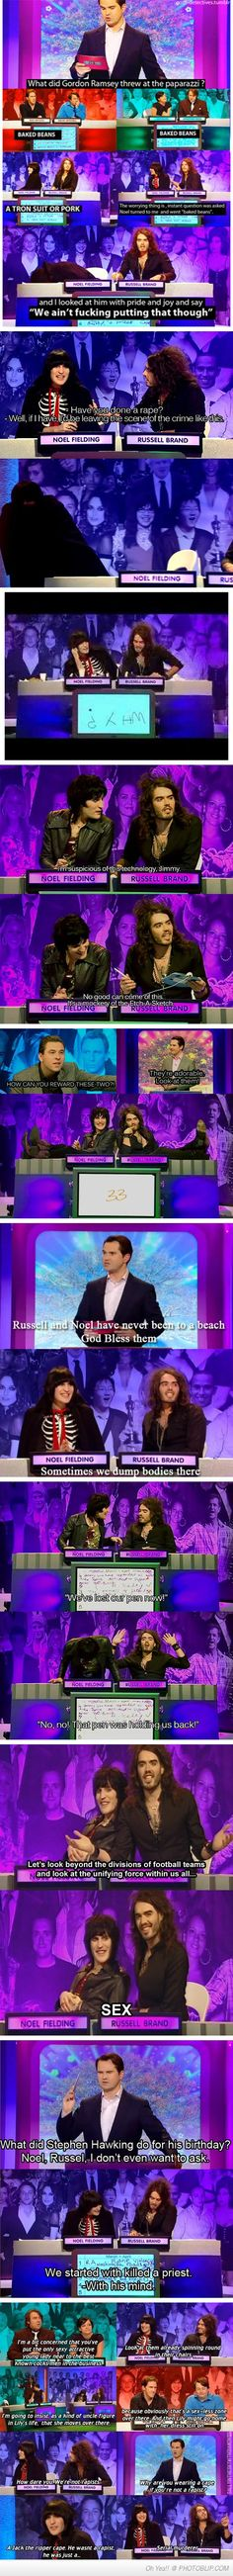 Omg I love them so much. The perfect duo. Just look at how adorable they are. Noel Felding and Russell Brand.